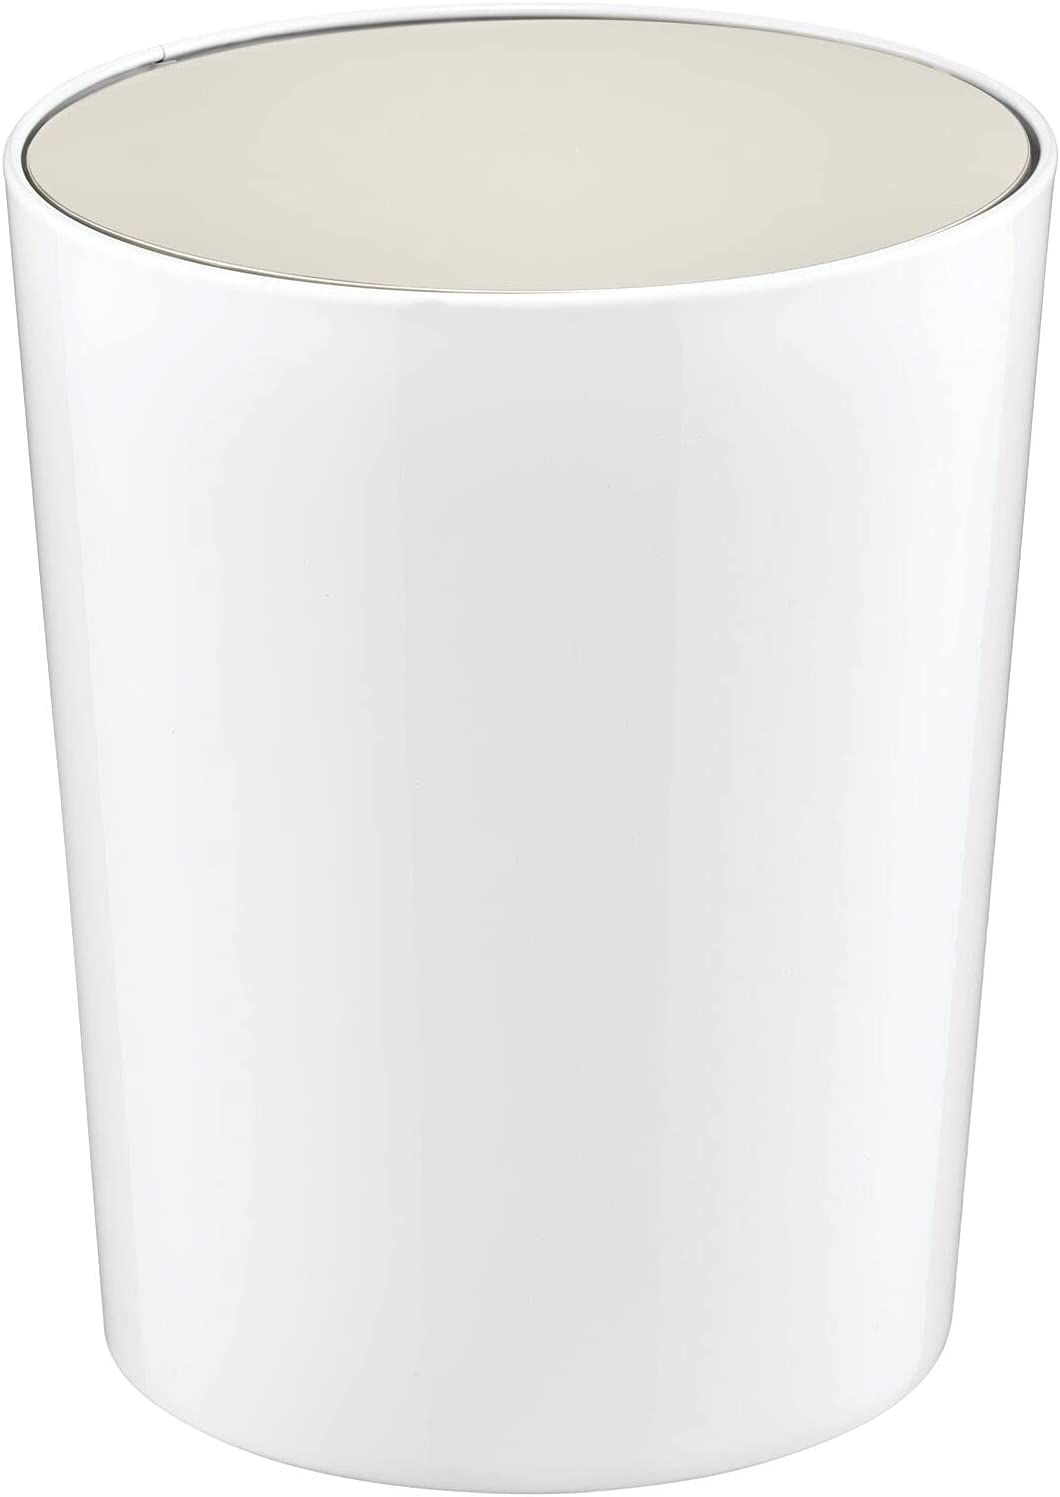 mDesign Round Swing Top Trash Can Wastebasket, Garbage Container Bin - for Bathroom, Powder Room, Bedroom, Kitchen, Craft Room, Office - White/Satin